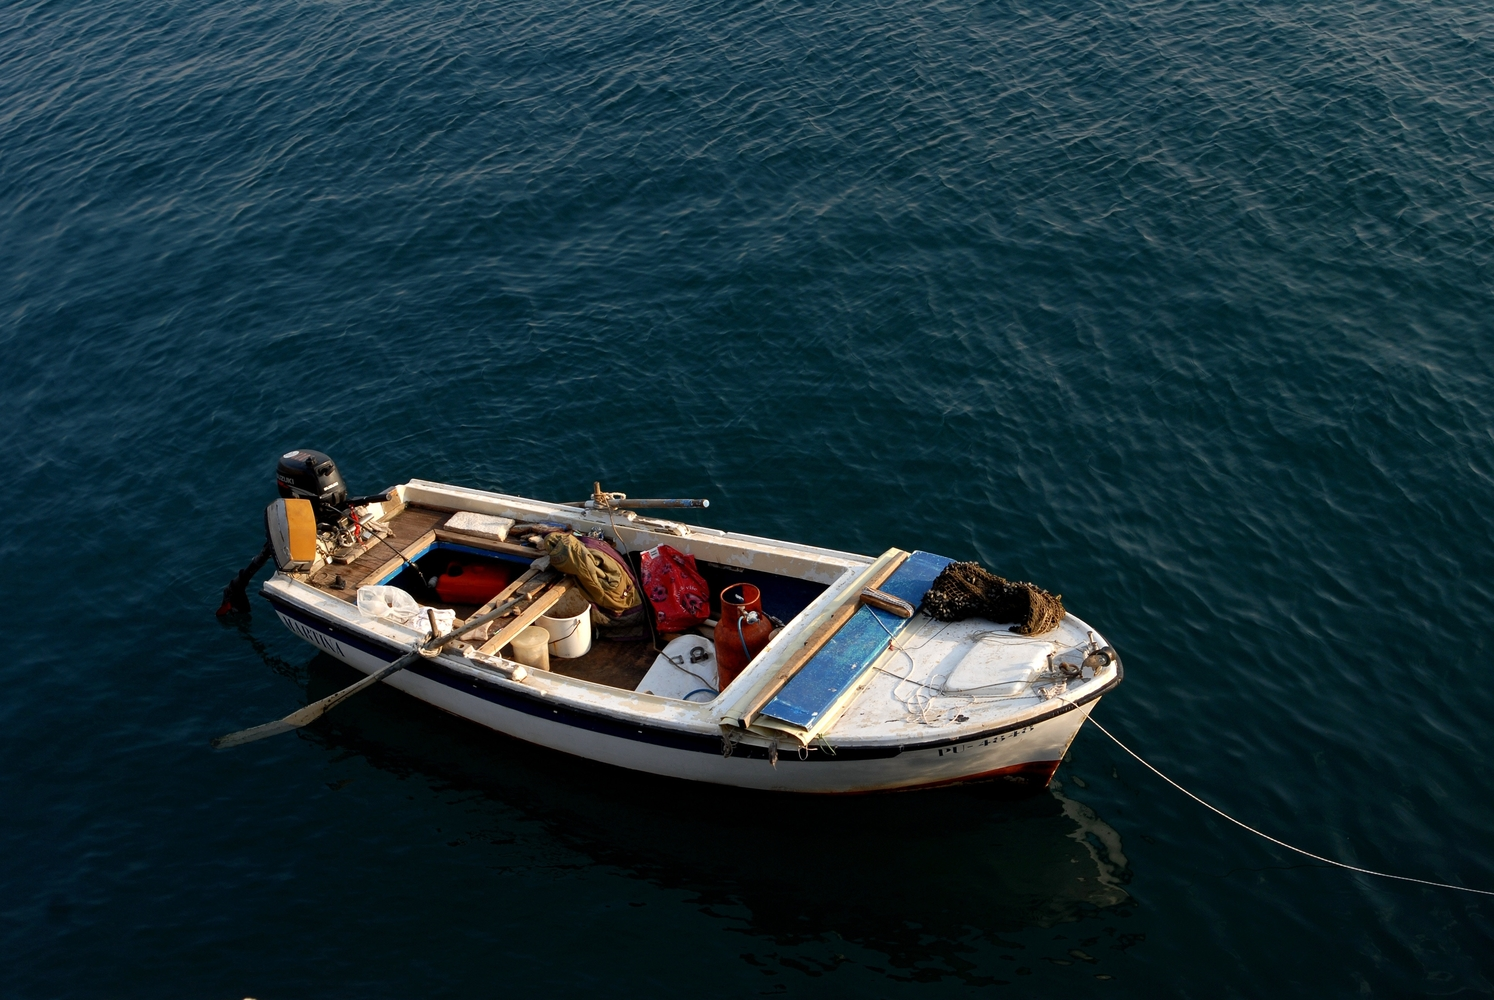 Small boat in the Adriatic sea